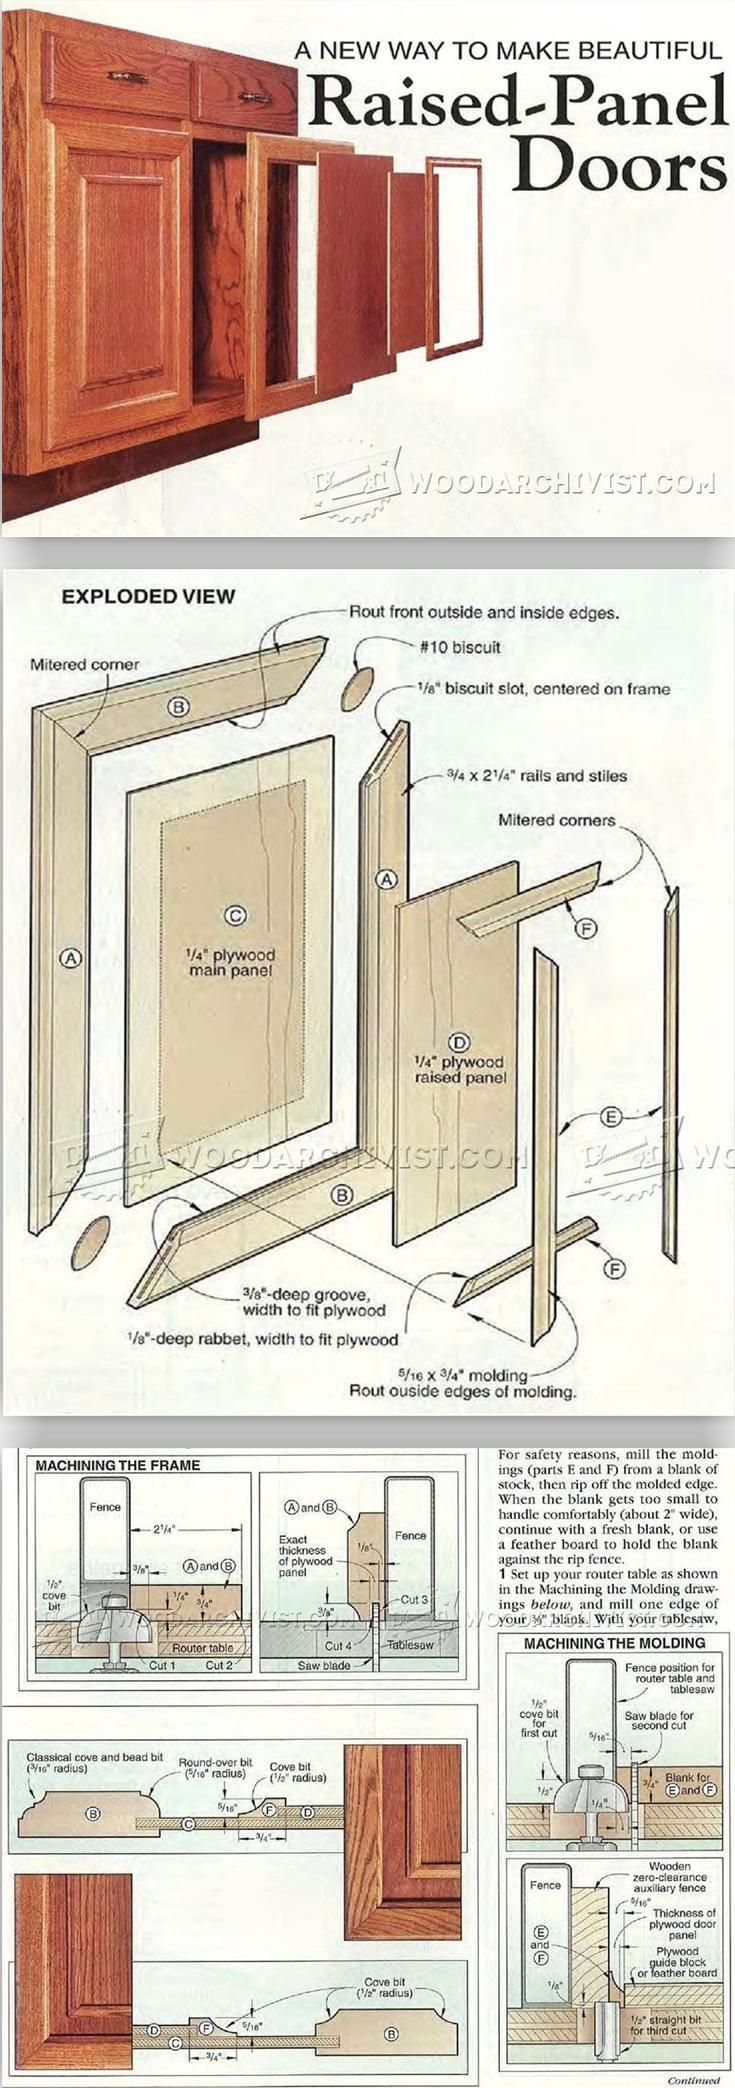 Making Raised Panel Doors - Cabinet Door Construction and Techniques | WoodArchivist.com